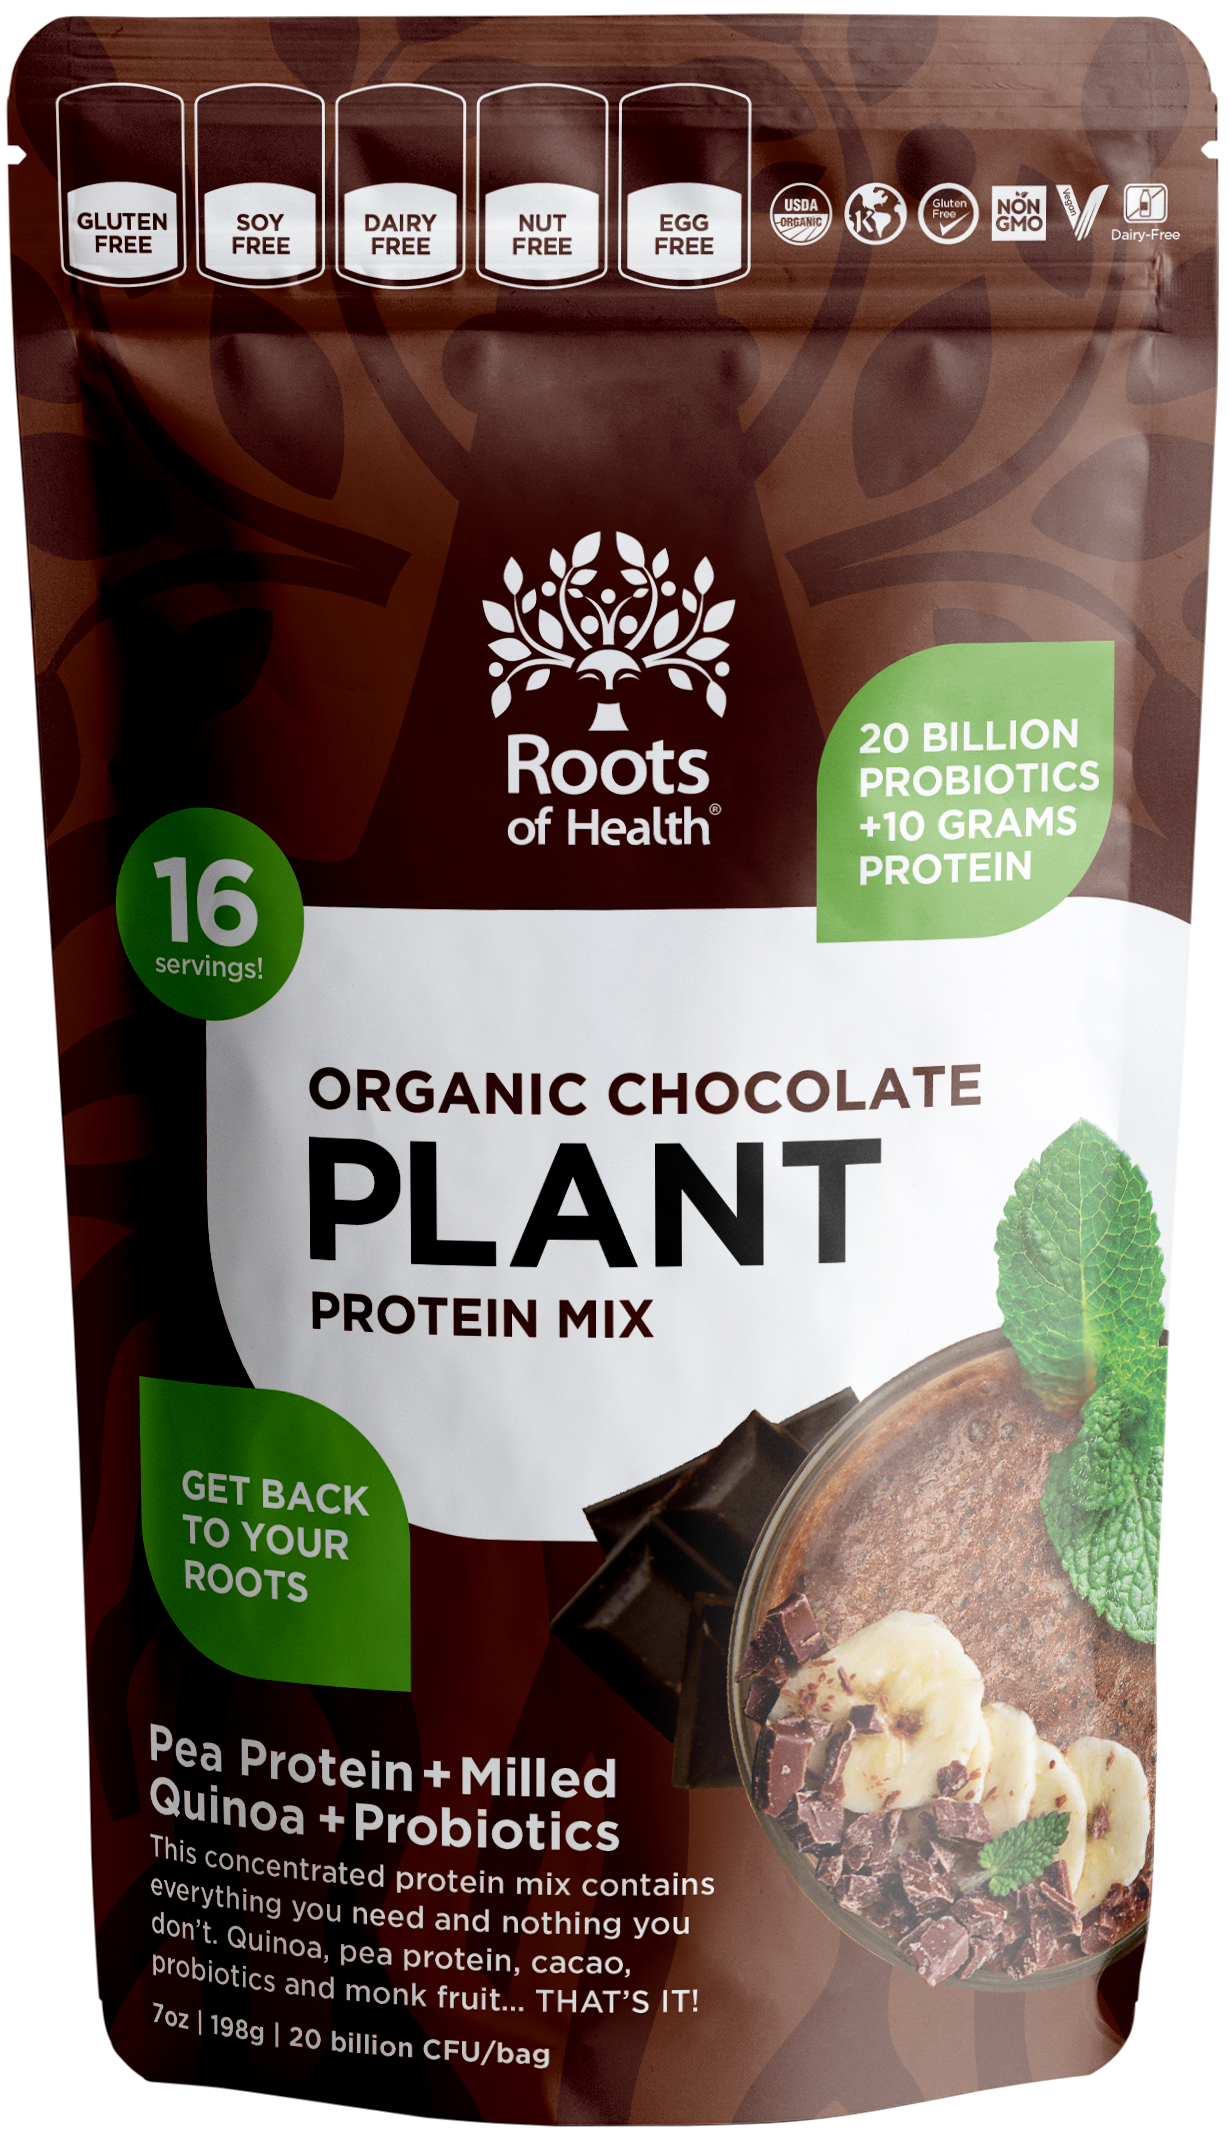 Organic Chocolate Plant Protein Mix (+Probiotics)